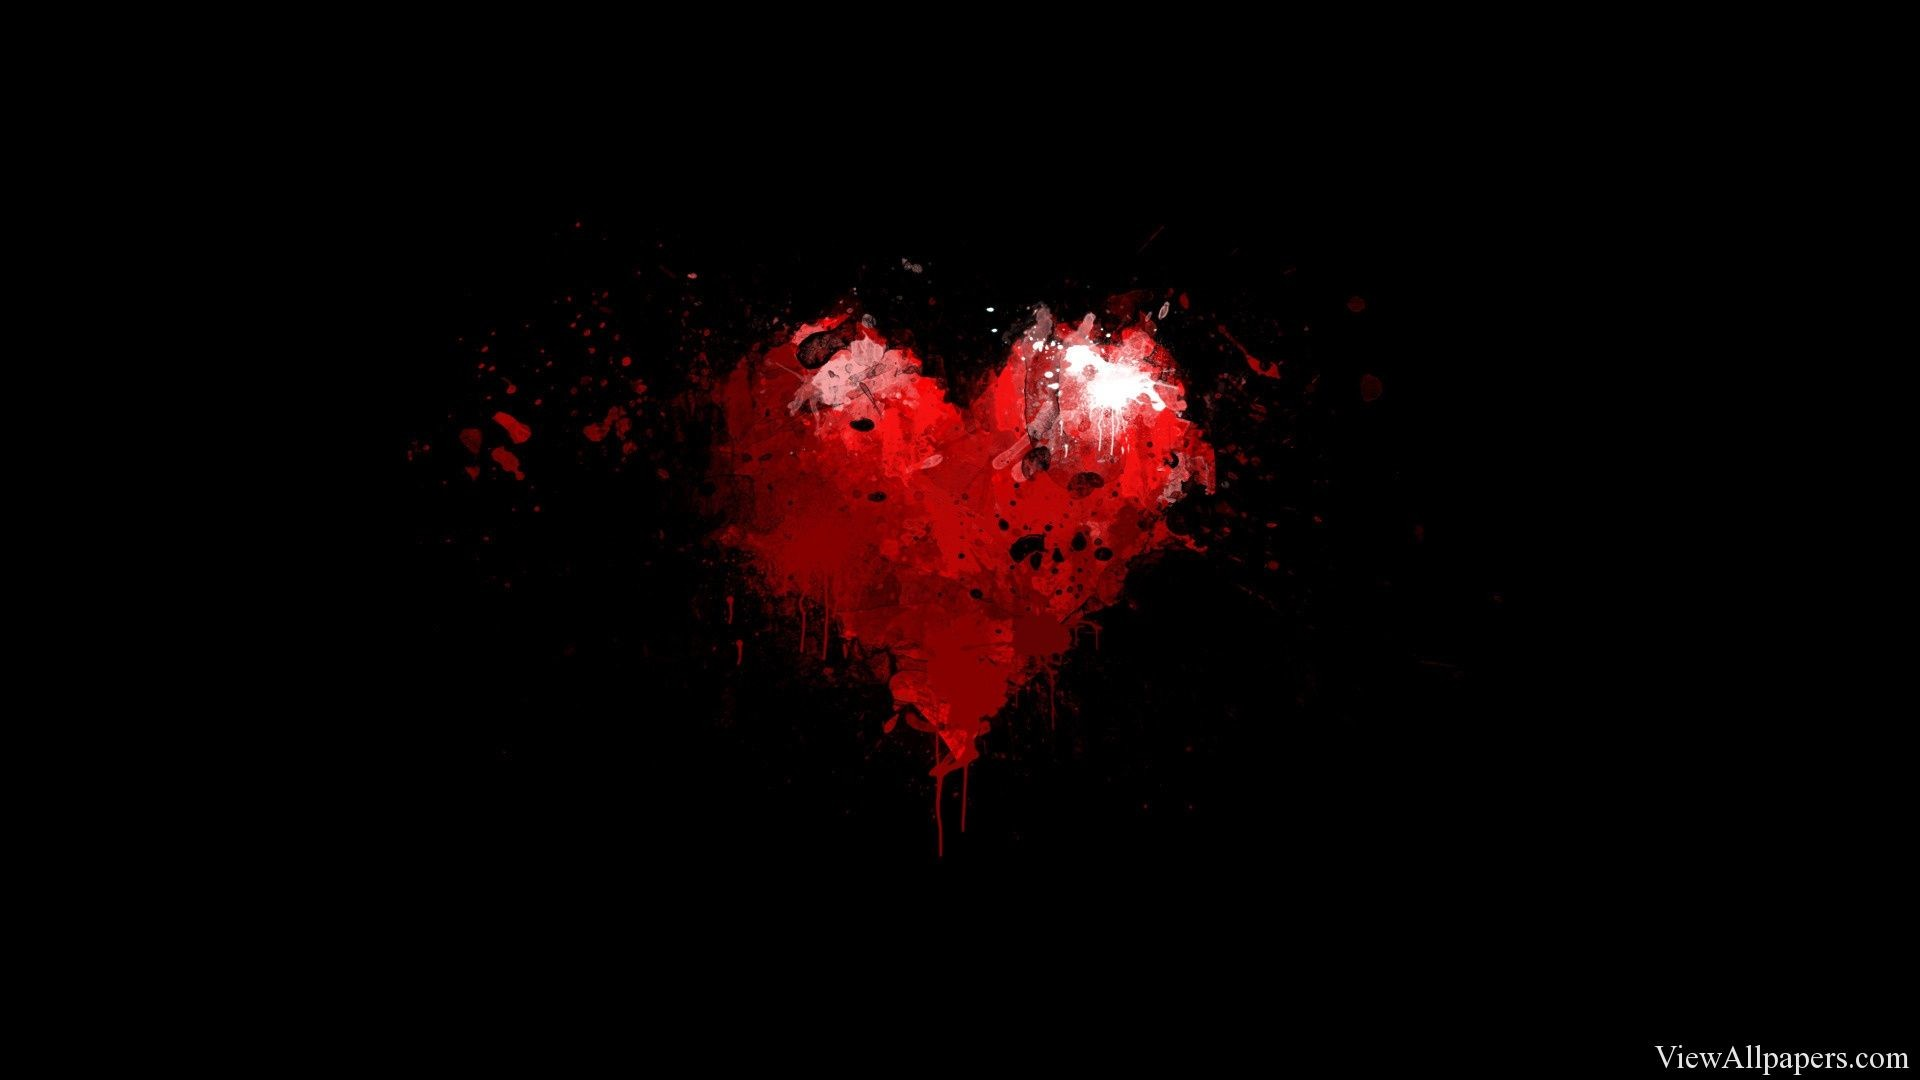 1920x1080 Painted Red Heart on Black Background Wallpaper